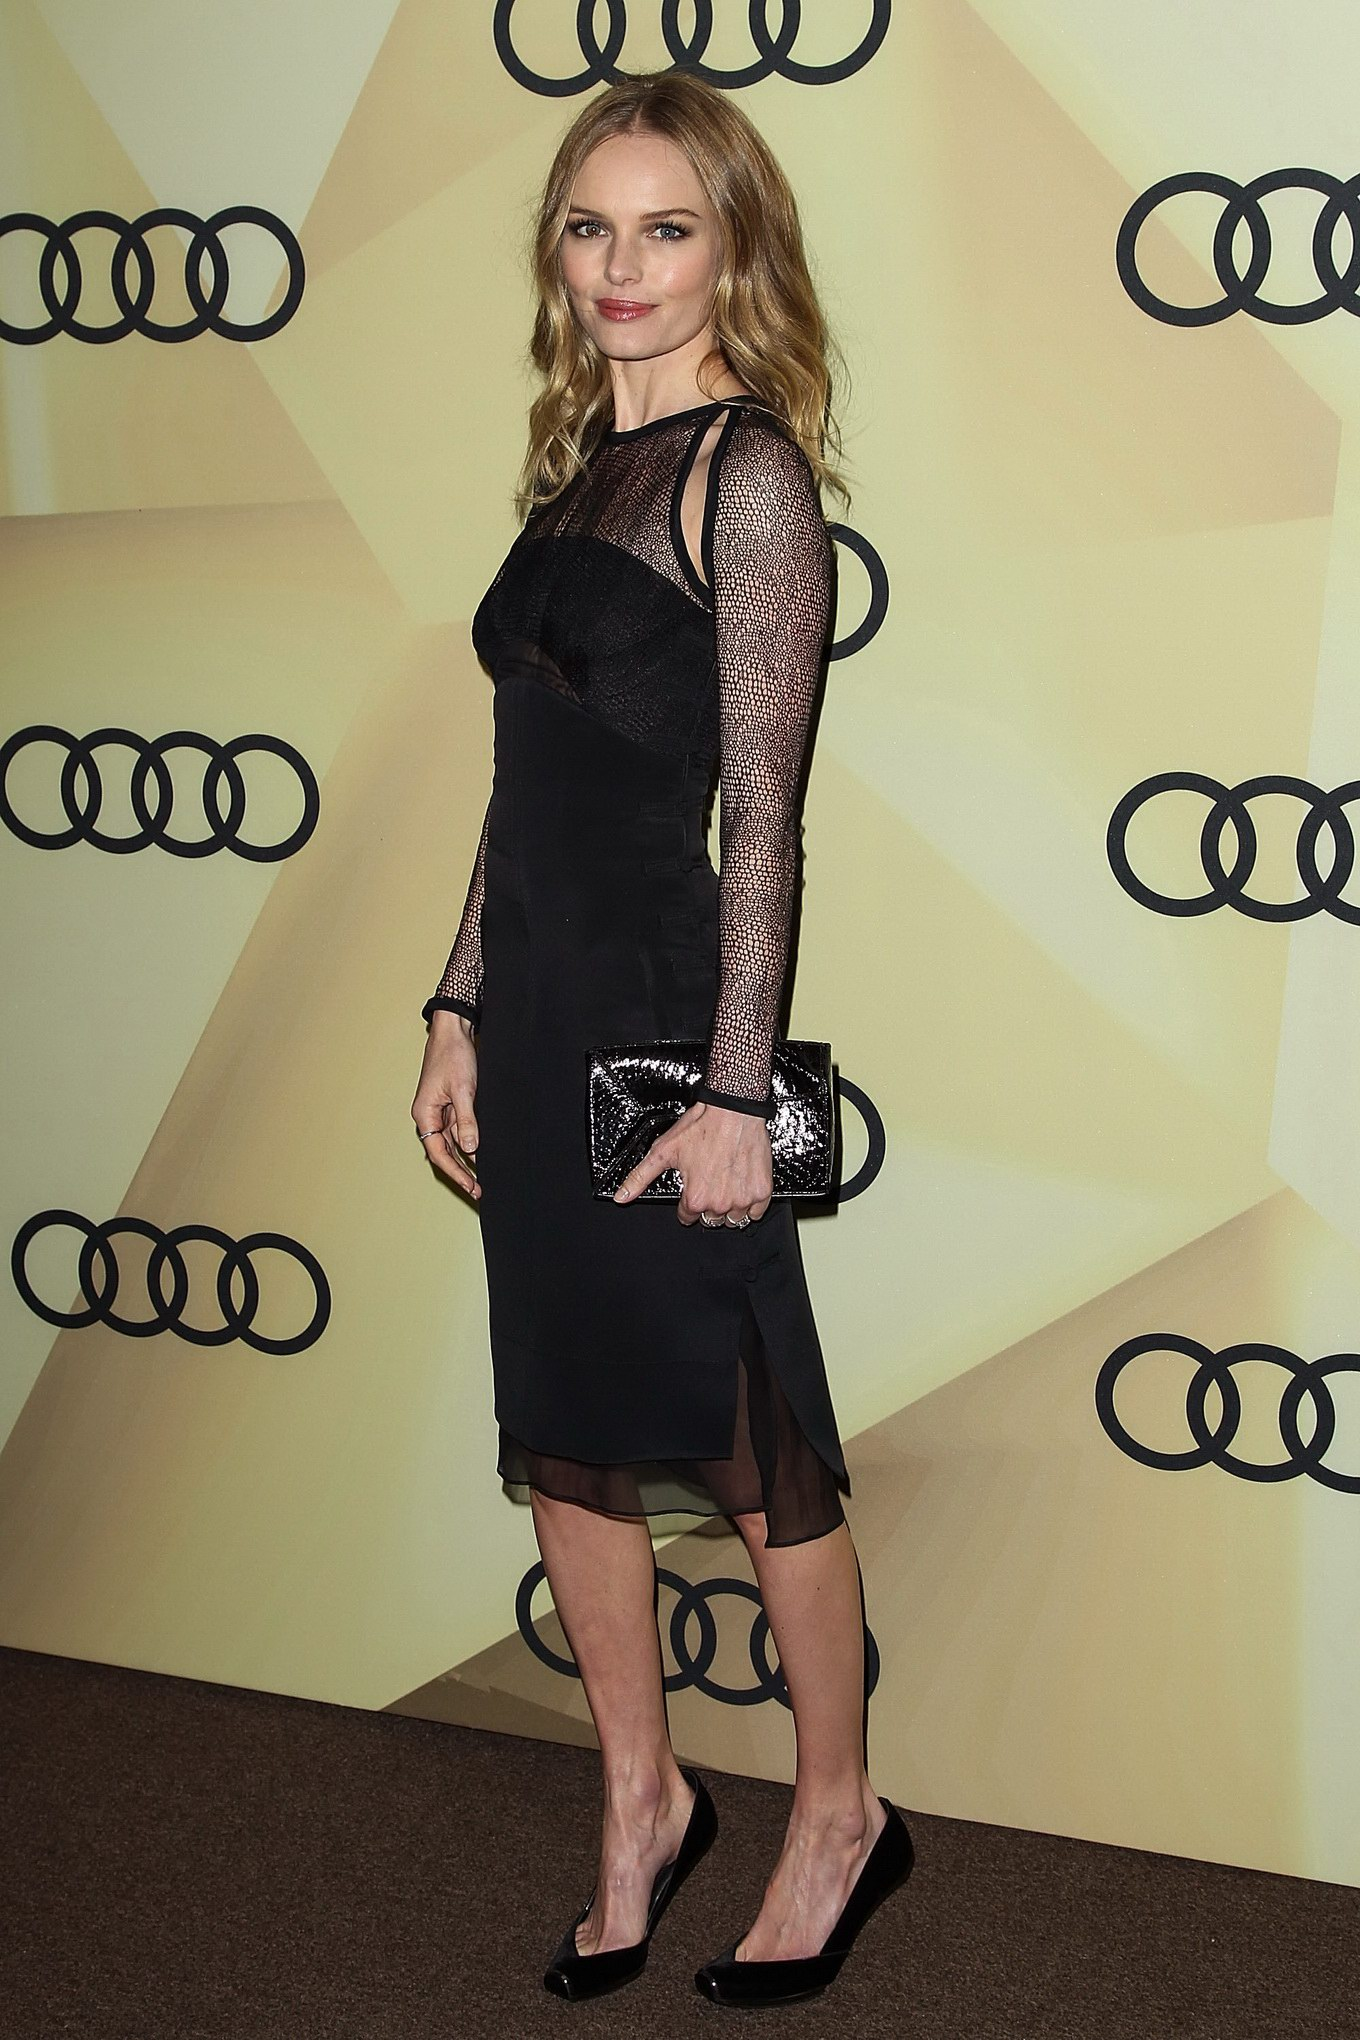 Kate Bosworth looks hot wearing black partially see-through dress at ... Kate Bosworth